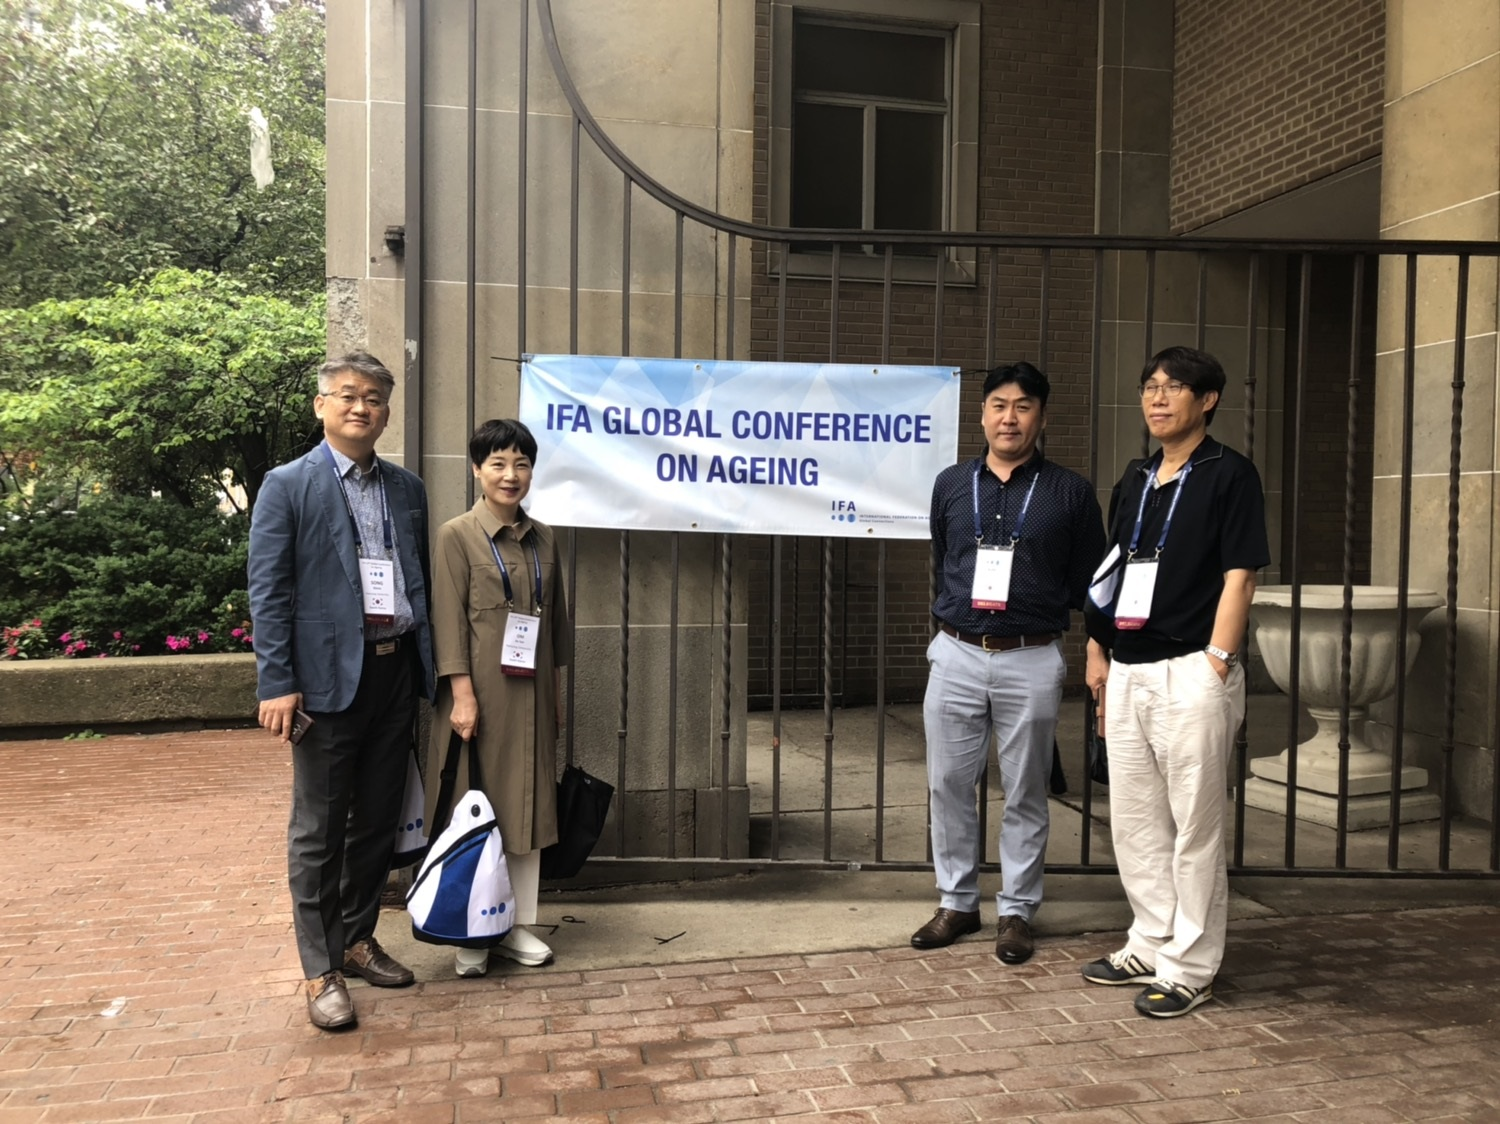 IFA Global Conference on Ageing 참석